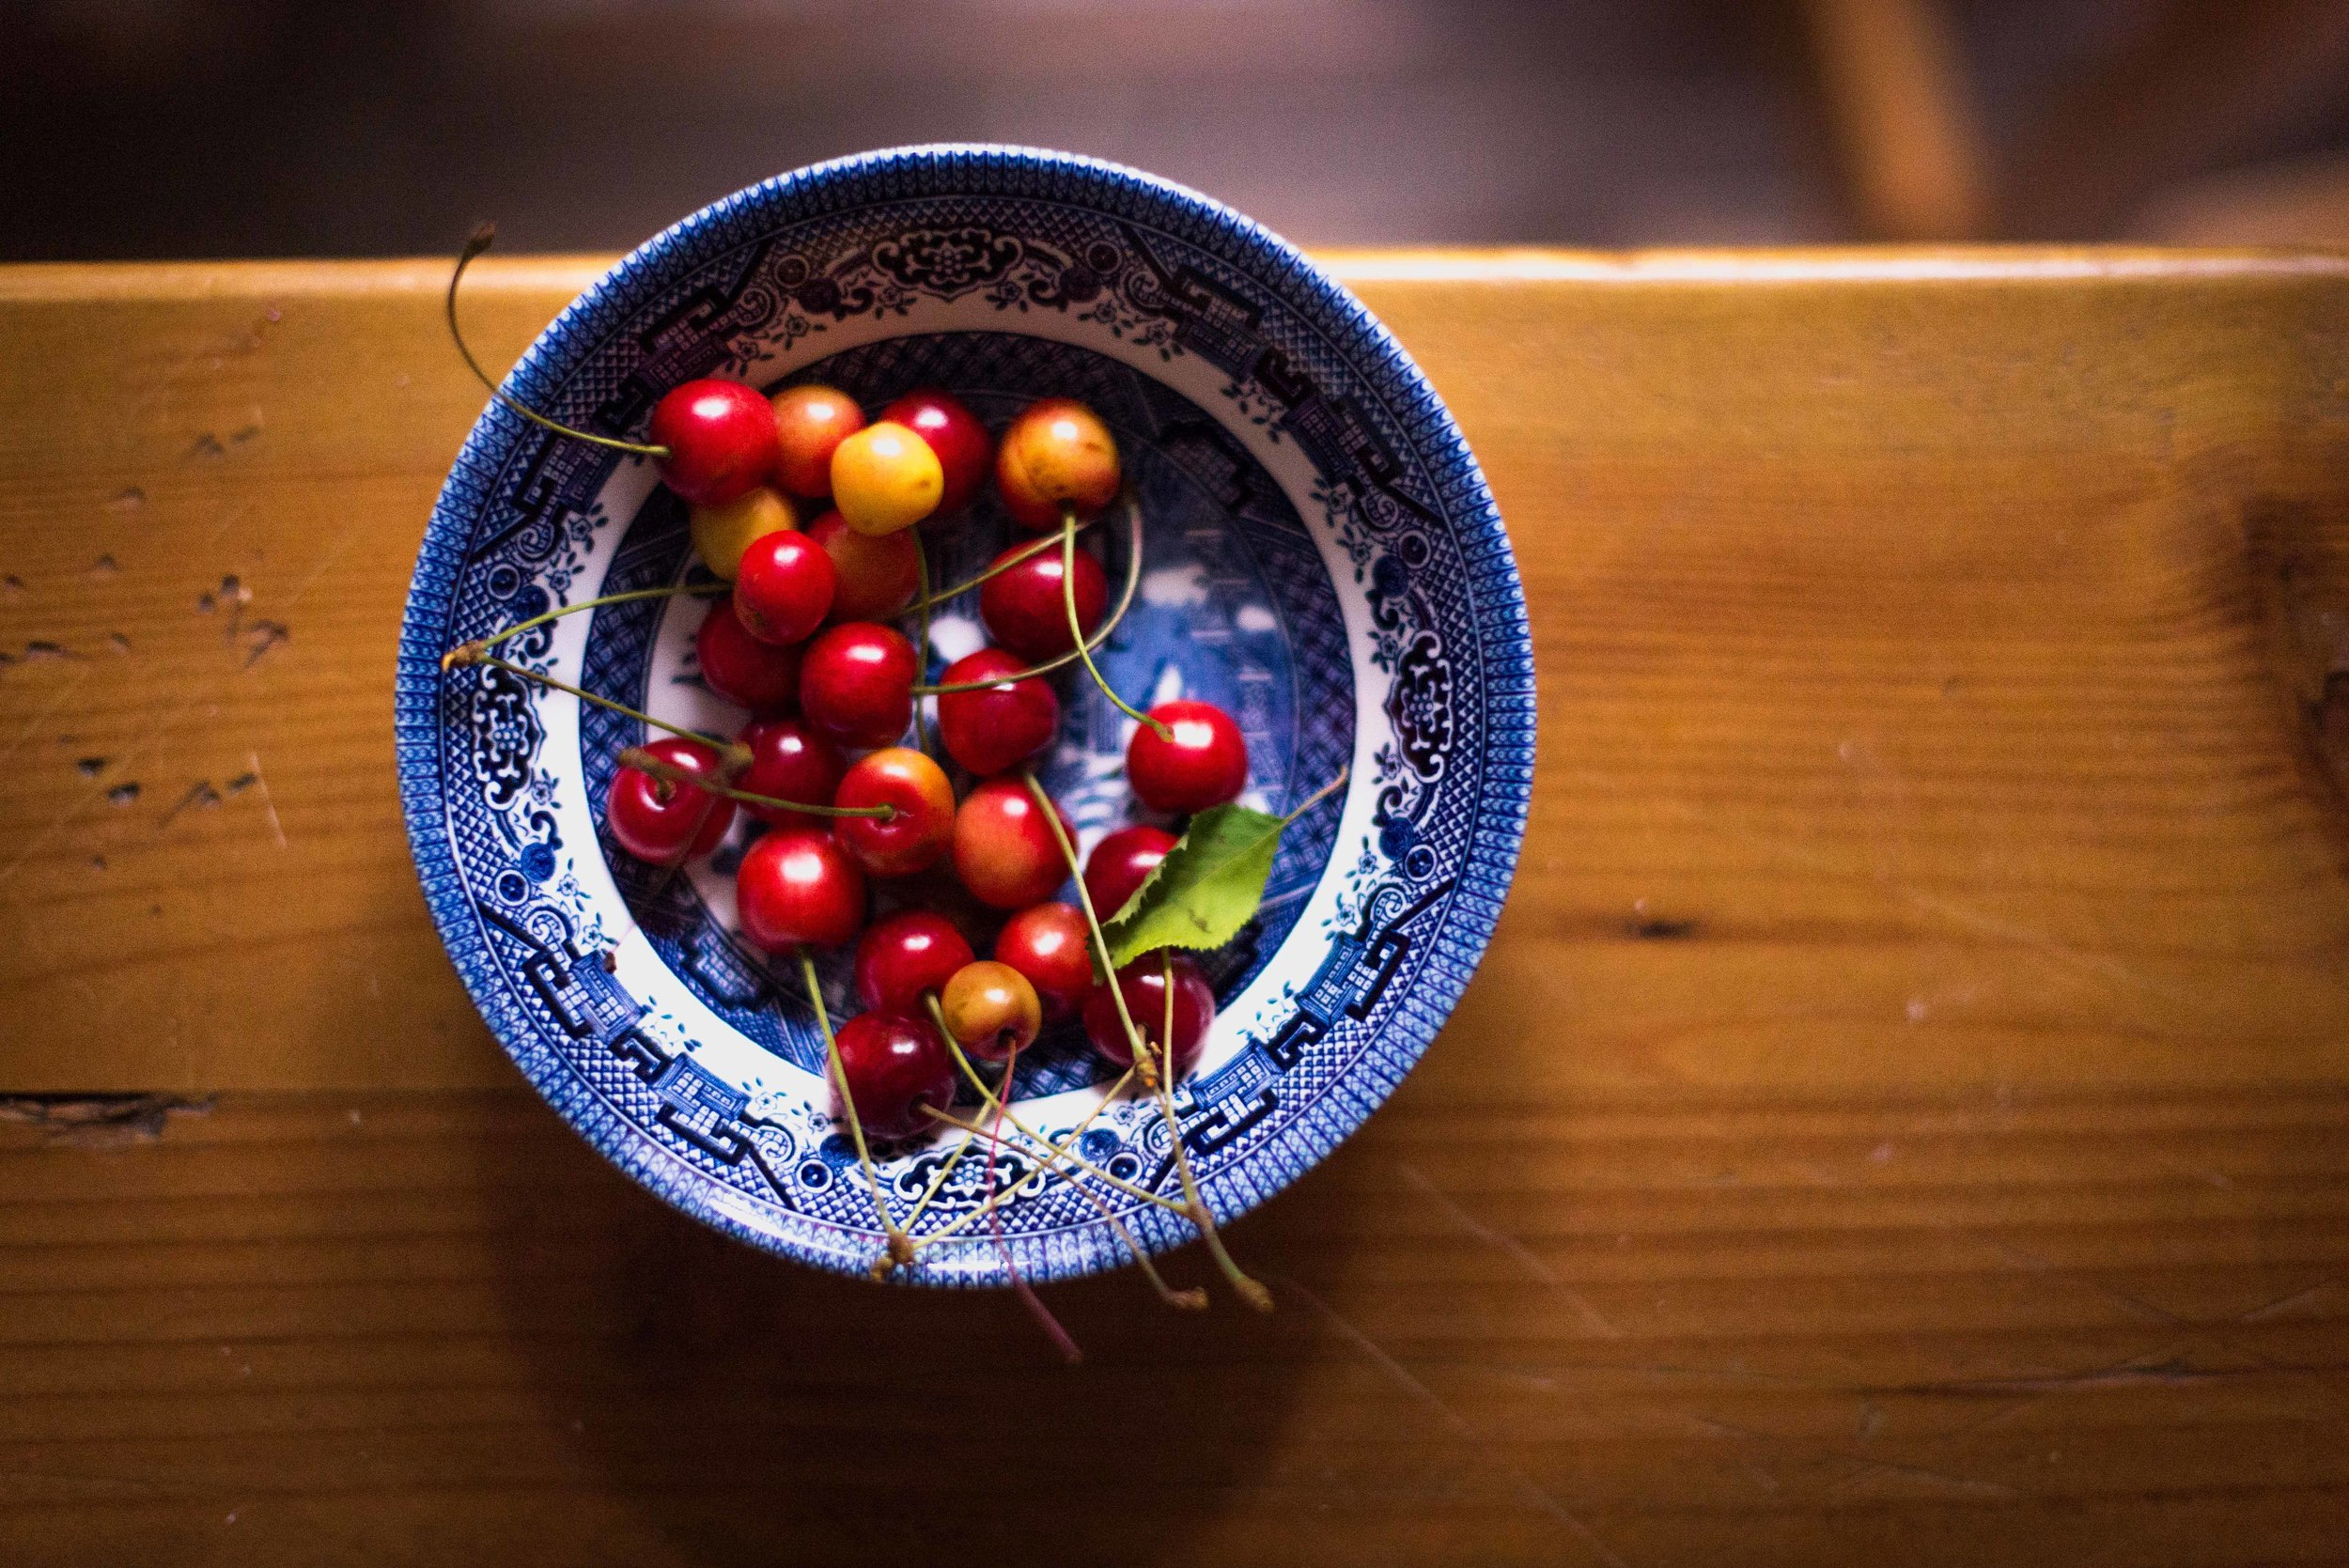 bowl of cherries II.jpg